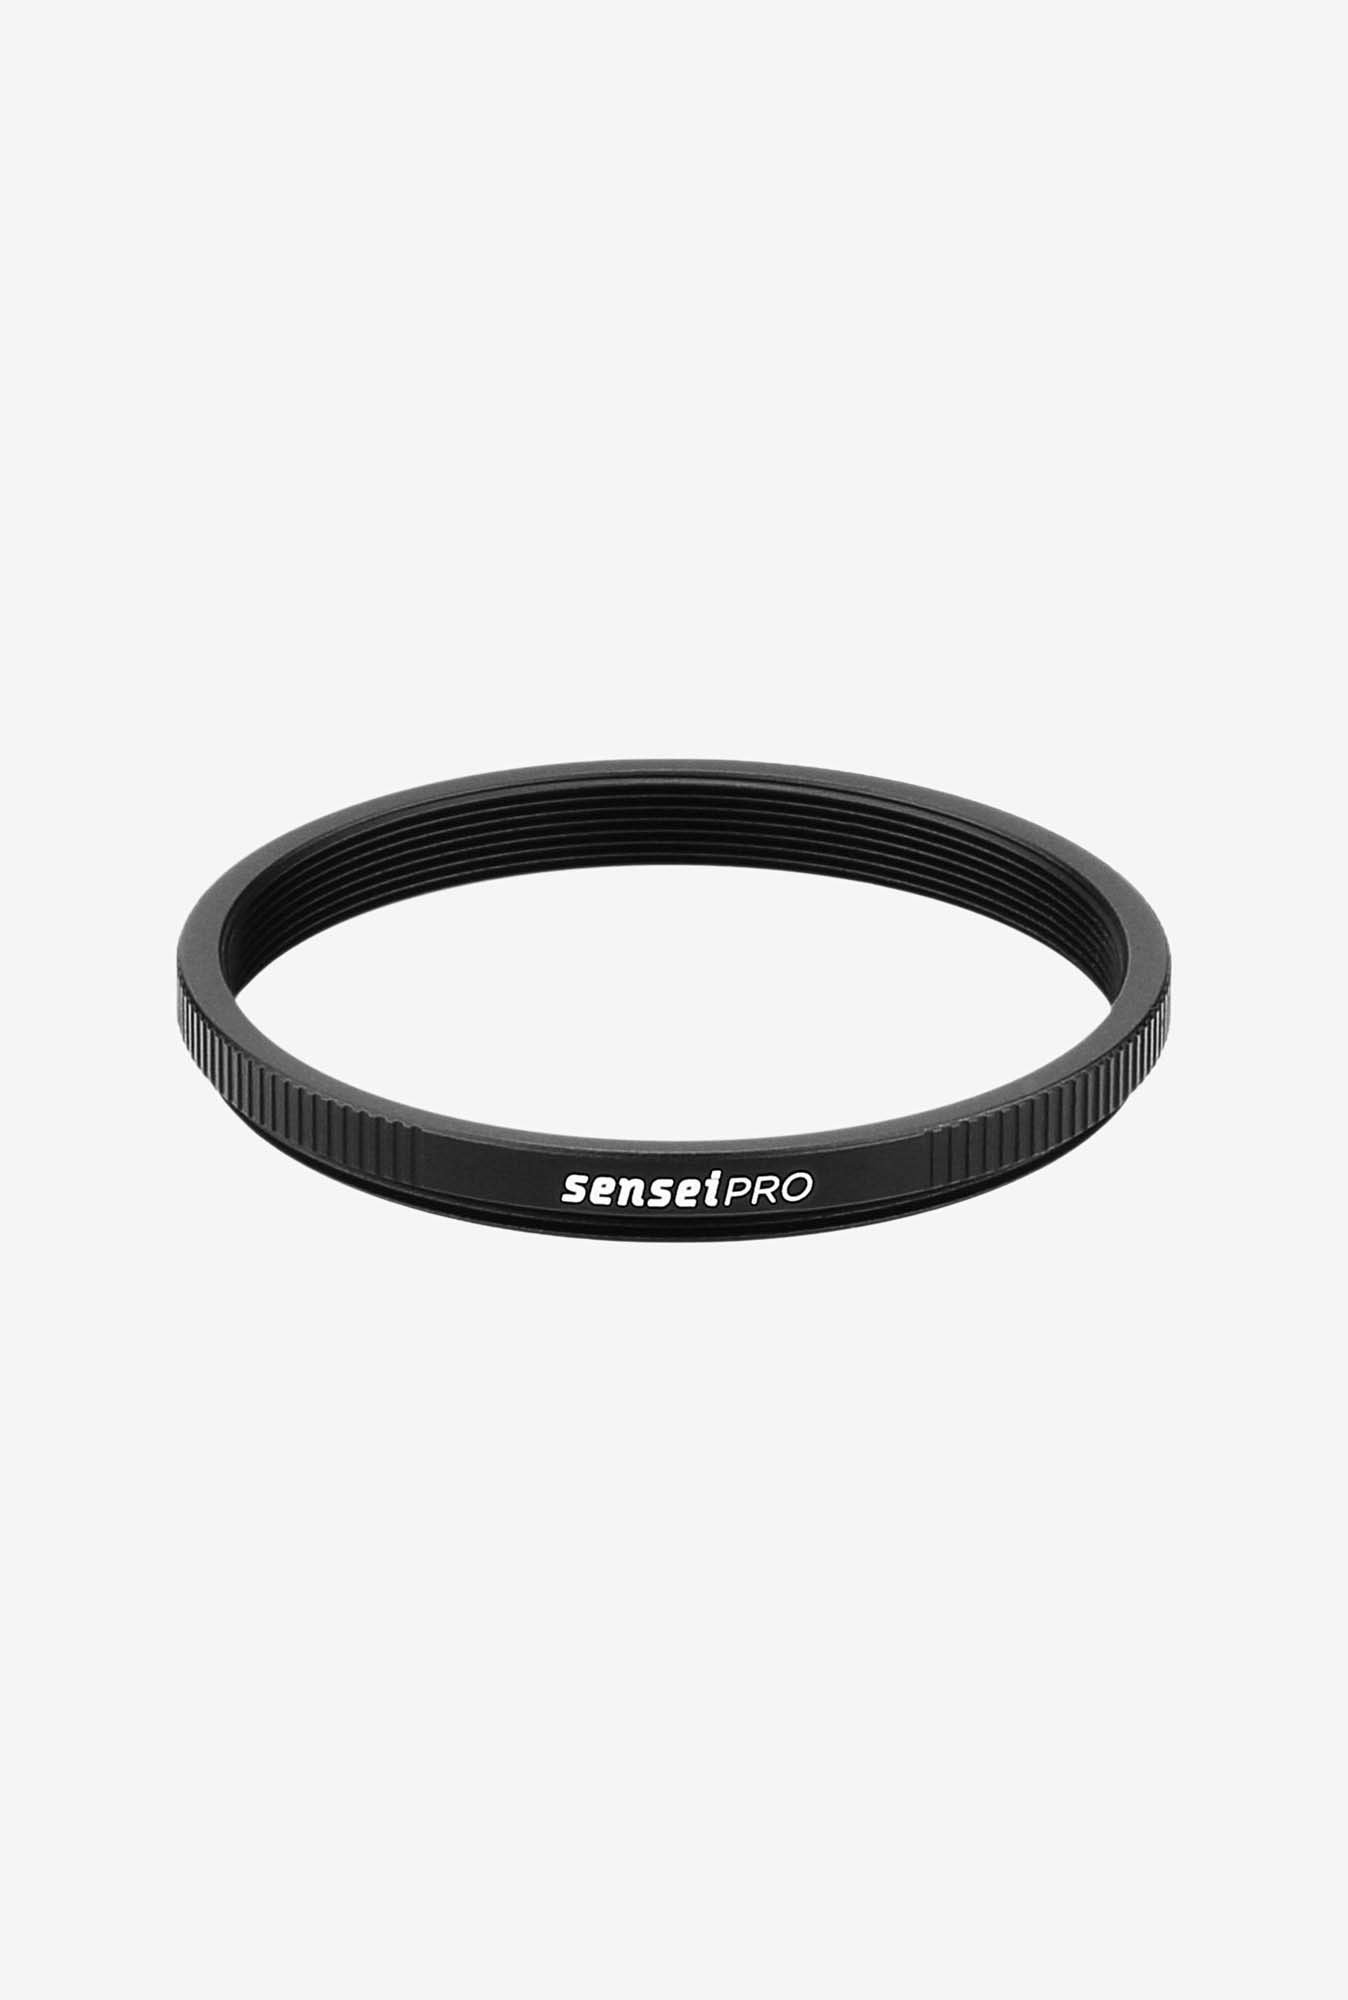 Sensei Pro SDRPA5552 55-52mm Step-Down Ring (Black)